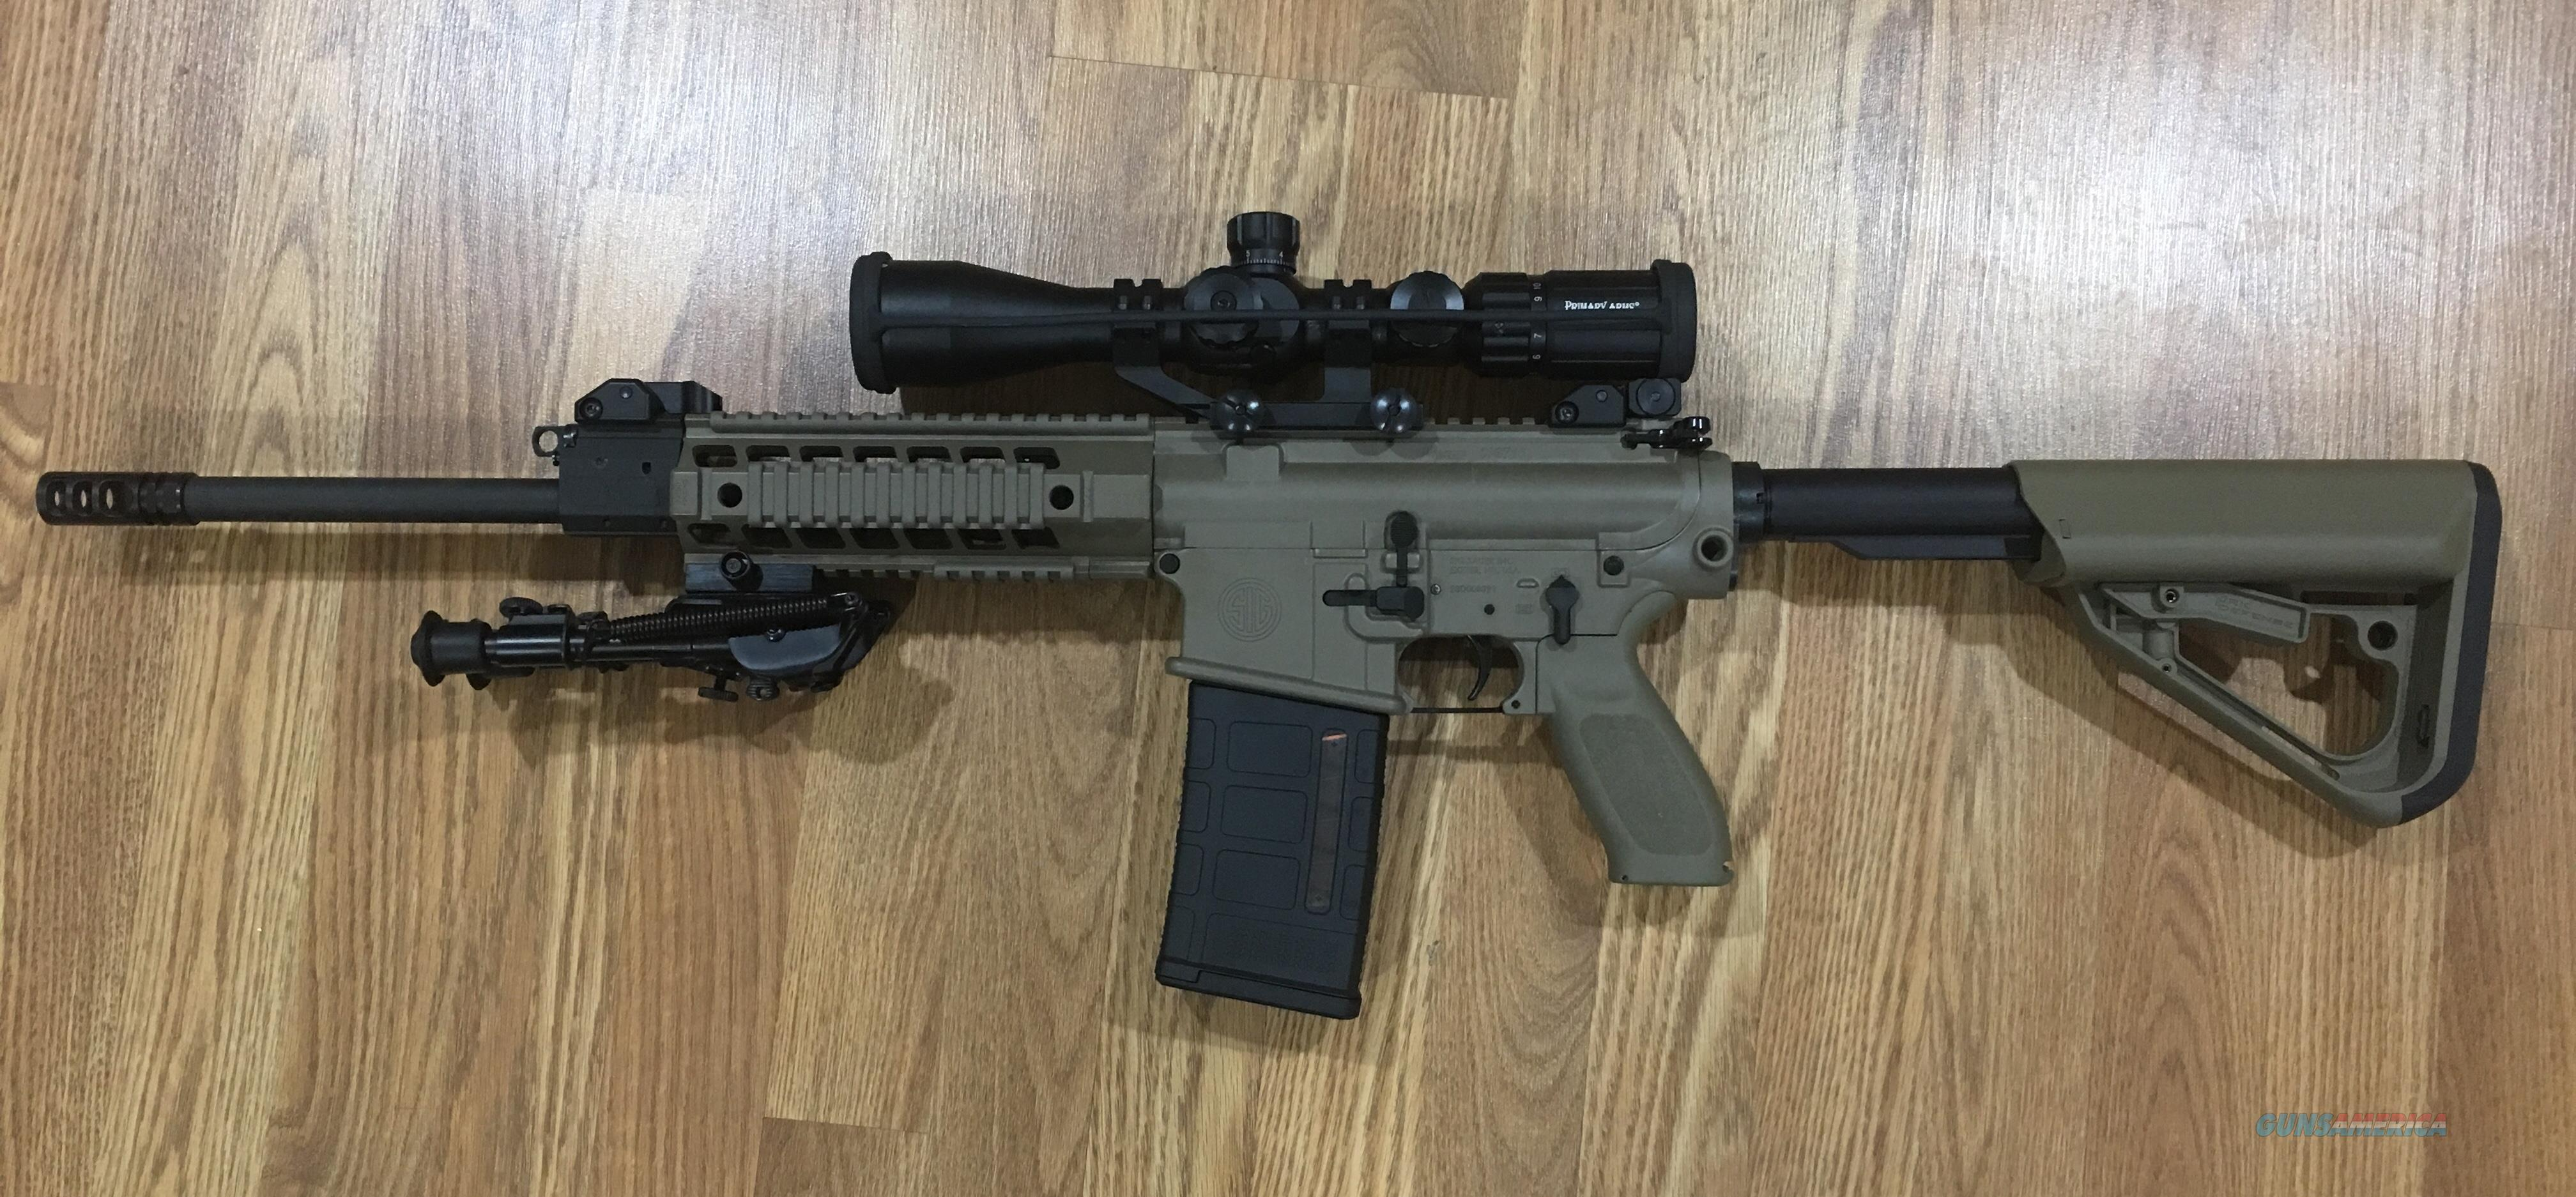 Used SIG Sauer SIG716 Patrol in FDE with upgrades!  Guns > Rifles > Sig - Sauer/Sigarms Rifles